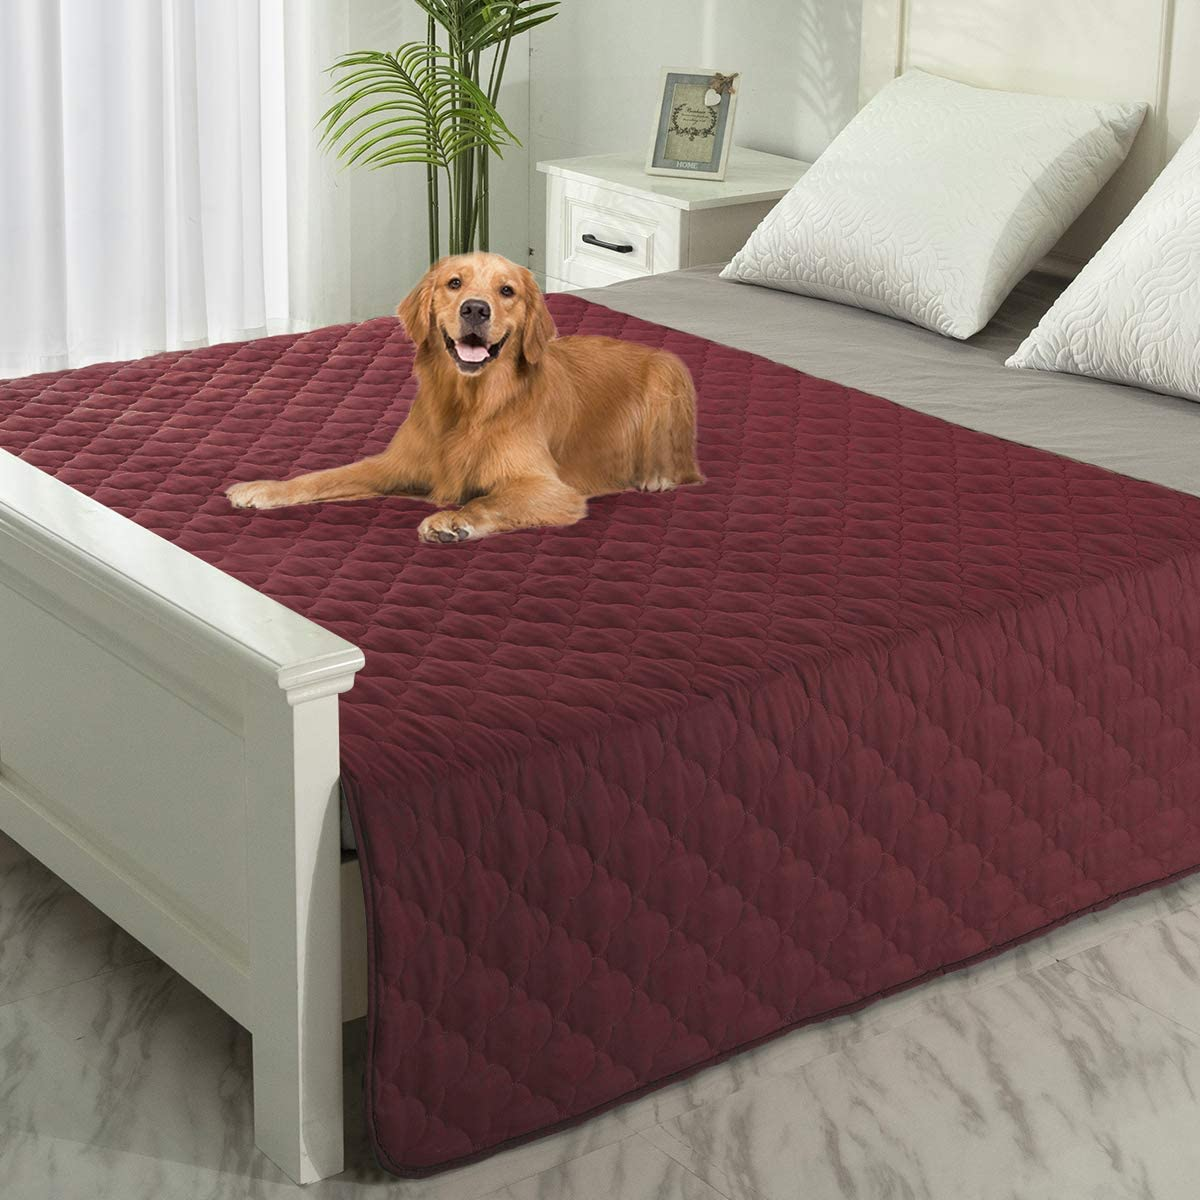 Chicago Mall Max 58% OFF SPXTEX Dog Bed Covers Rugs Puppy Washable Pee Pet Pads